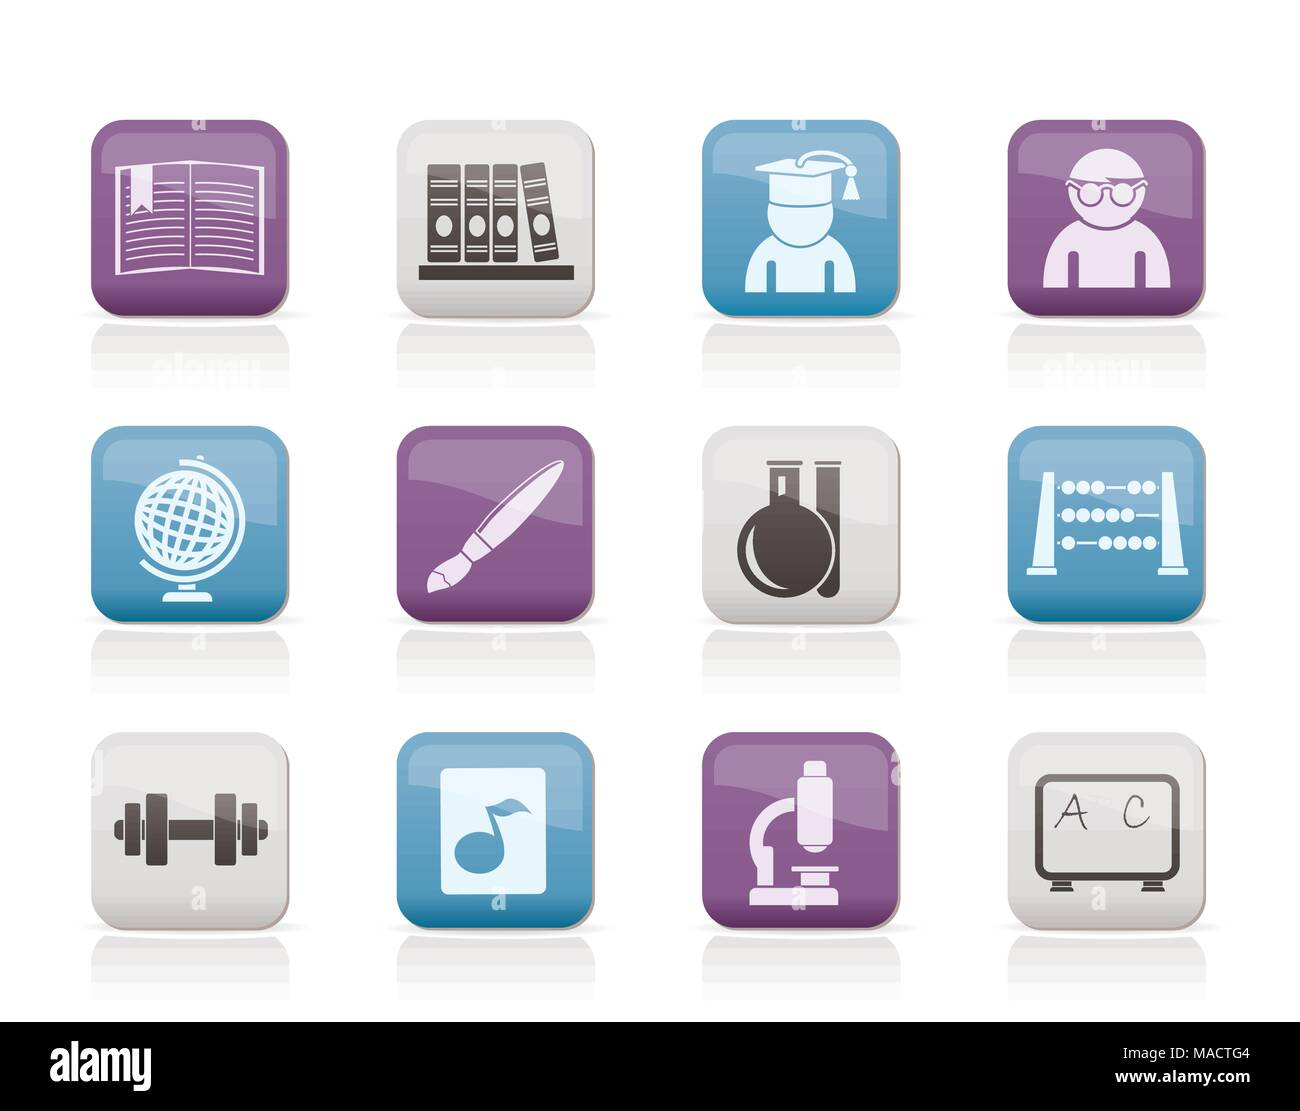 school and education icons - vector icon set - Stock Vector